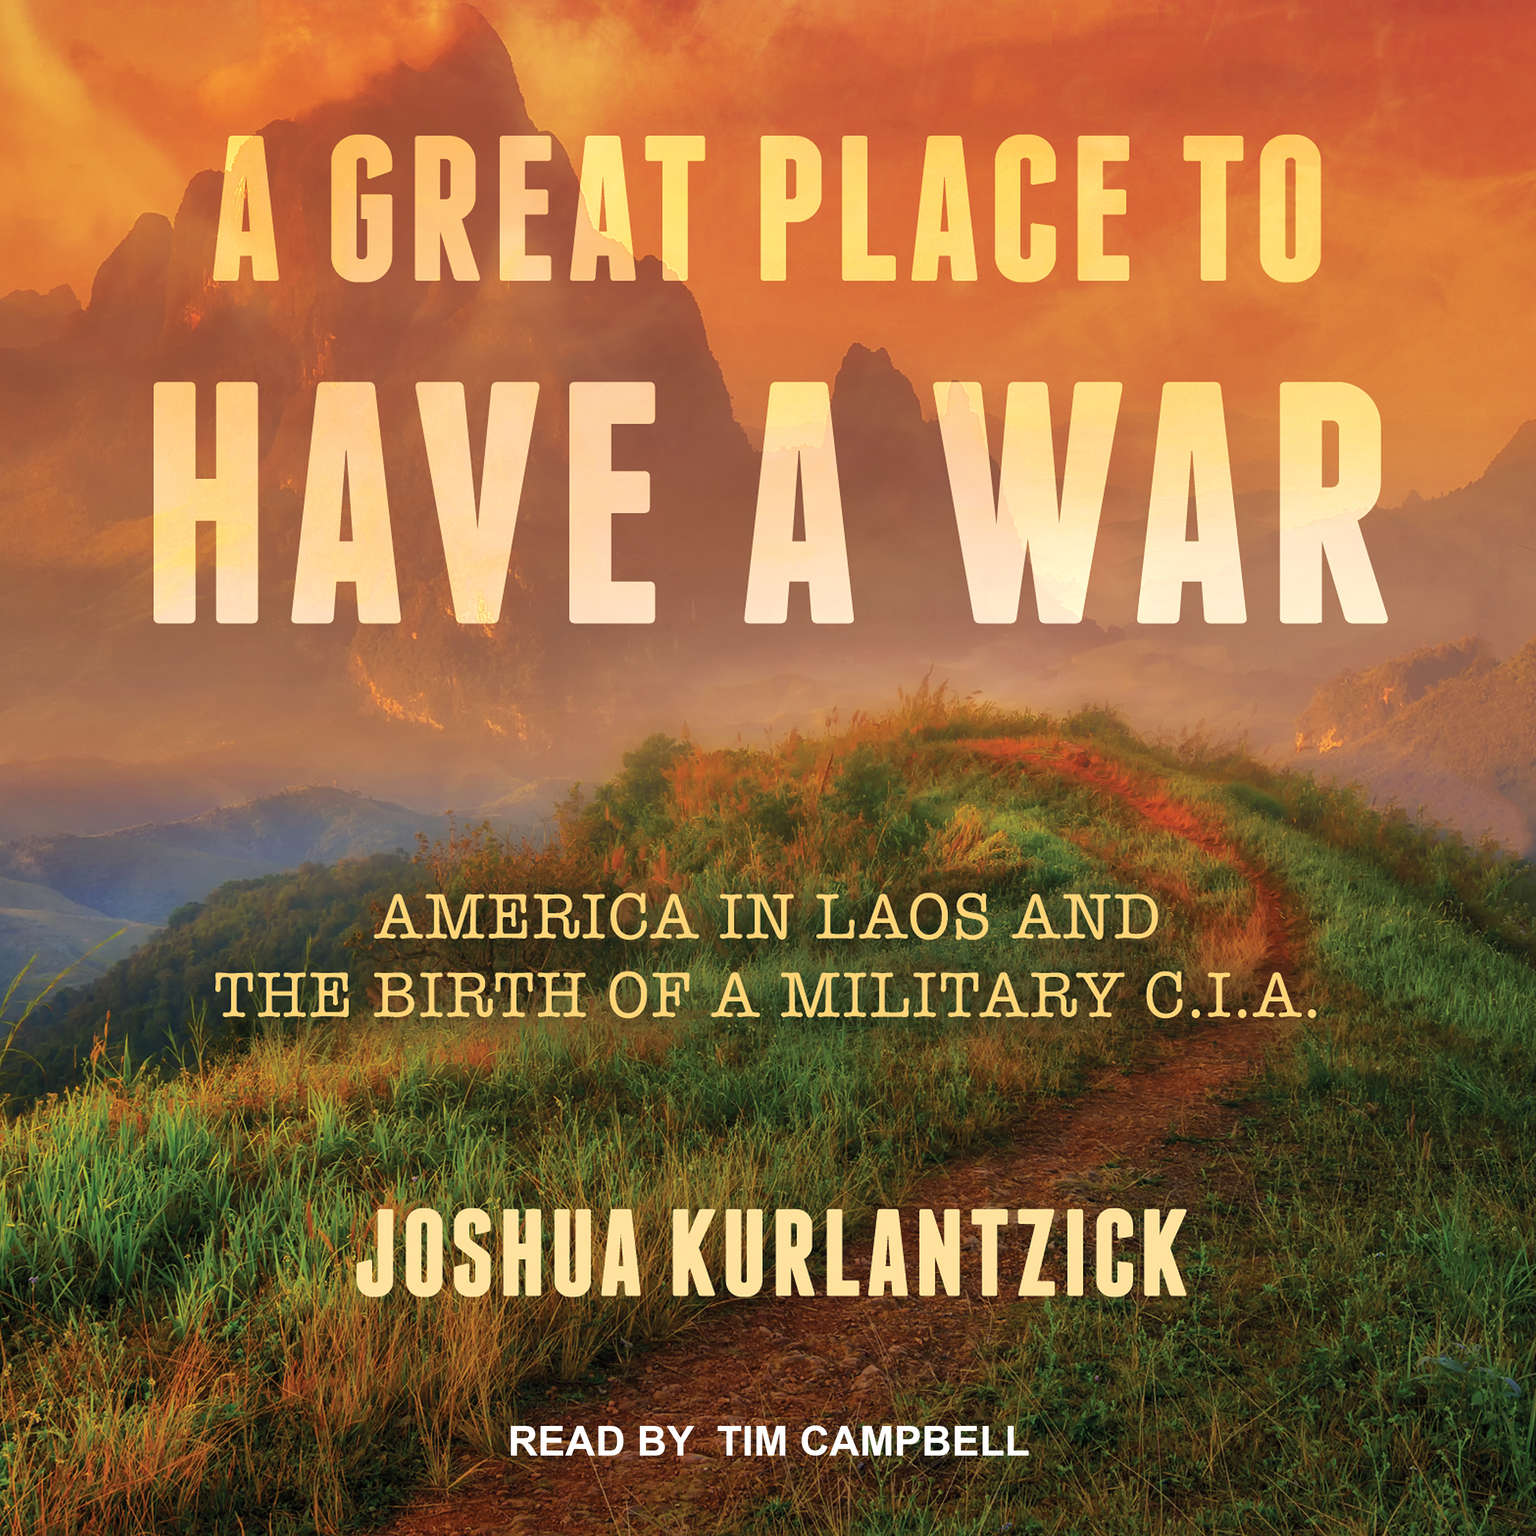 A Great Place to Have a War: America in Laos and the Birth of a Military CIA Audiobook, by Joshua Kurlantzick